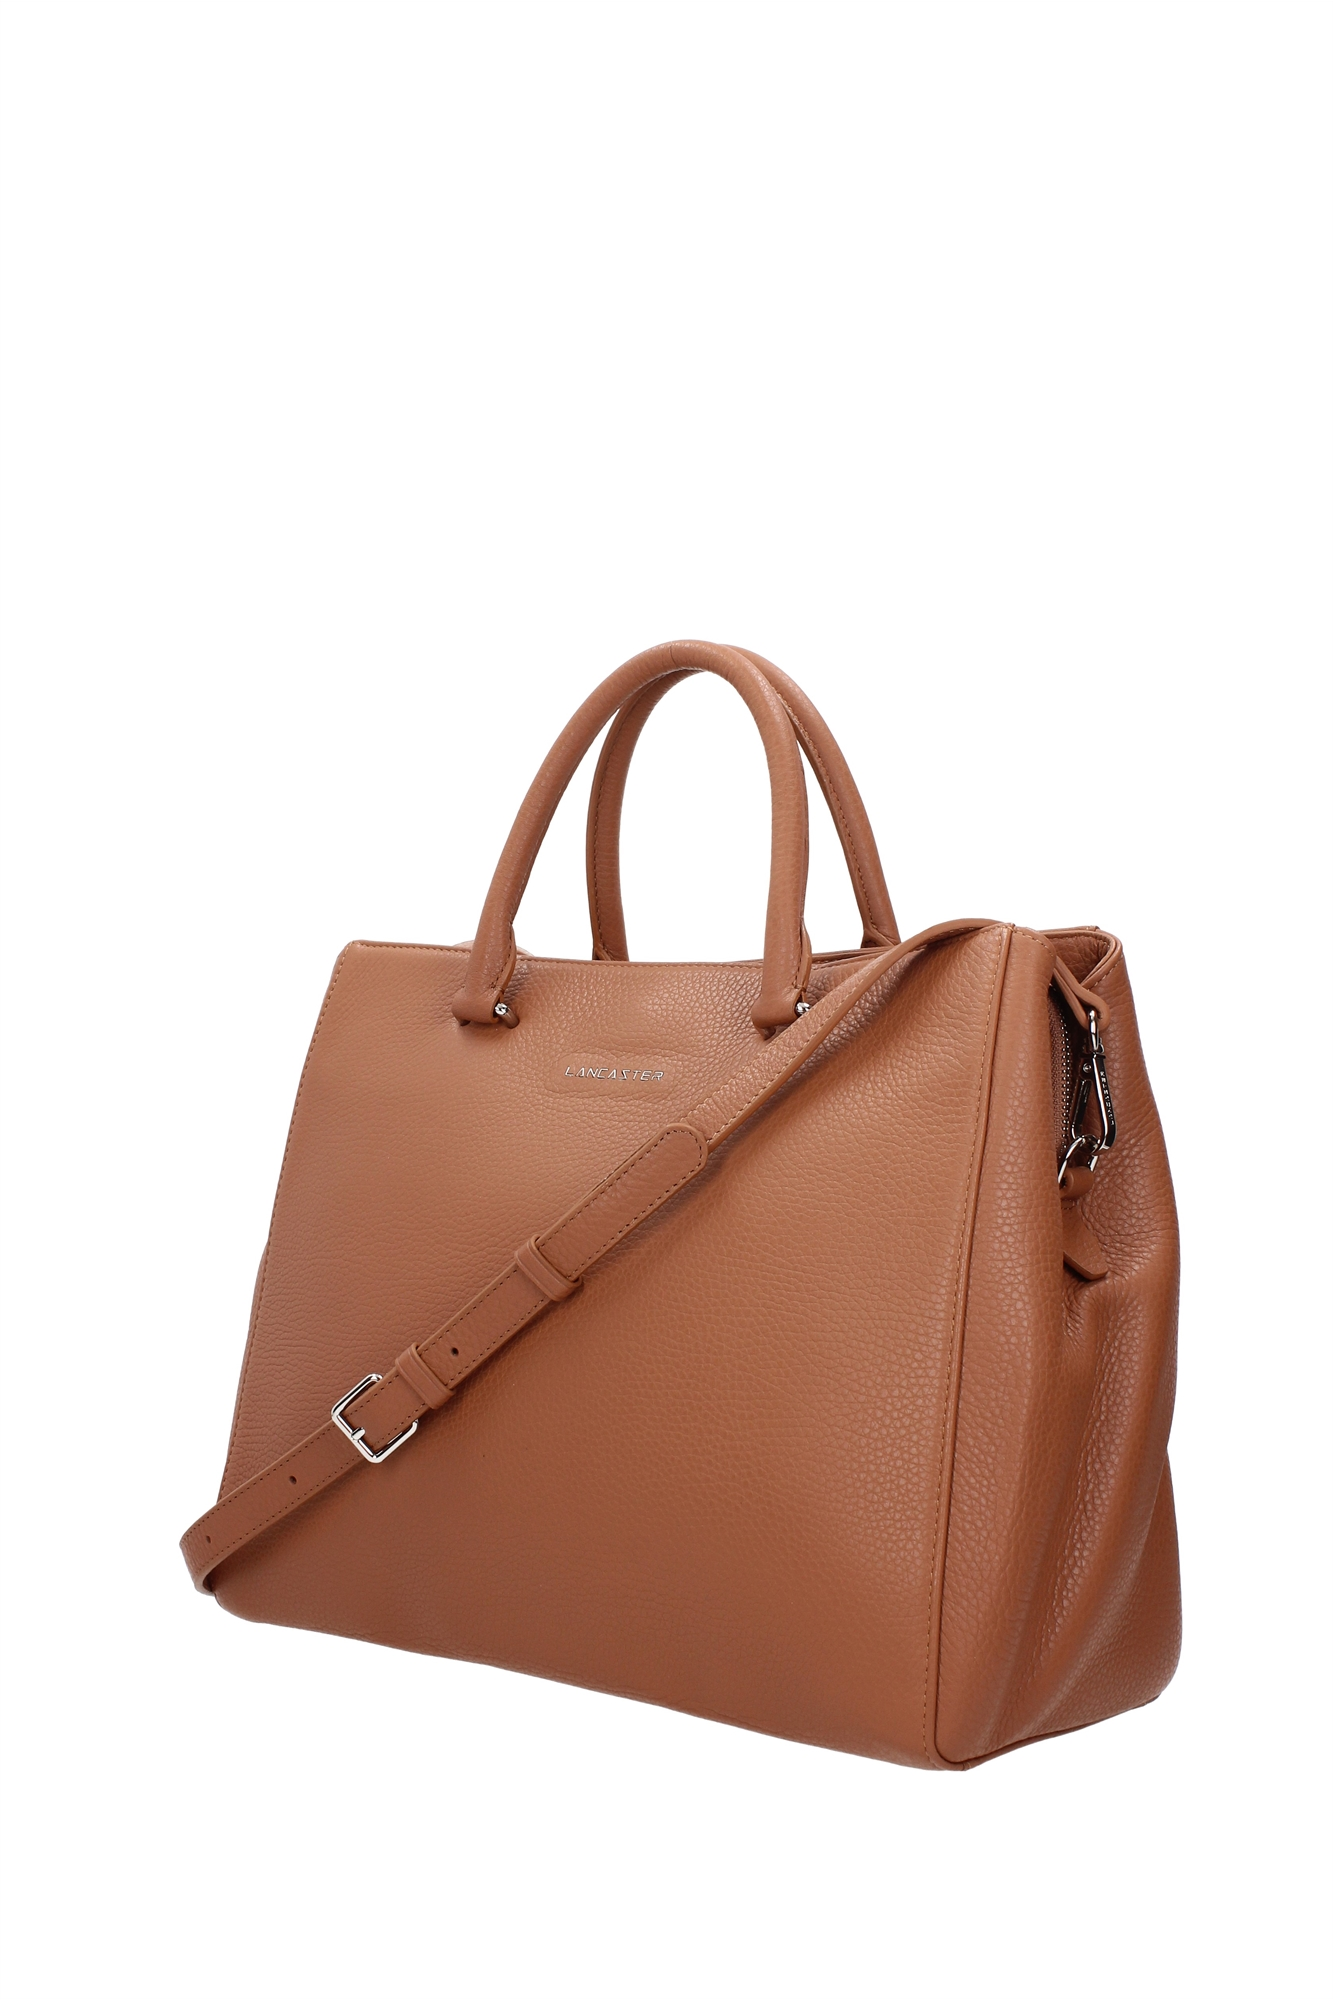 Brown Leather Bags: fatalovely.cf - Your Online Shop By Style Store! Get 5% in rewards with Club O!